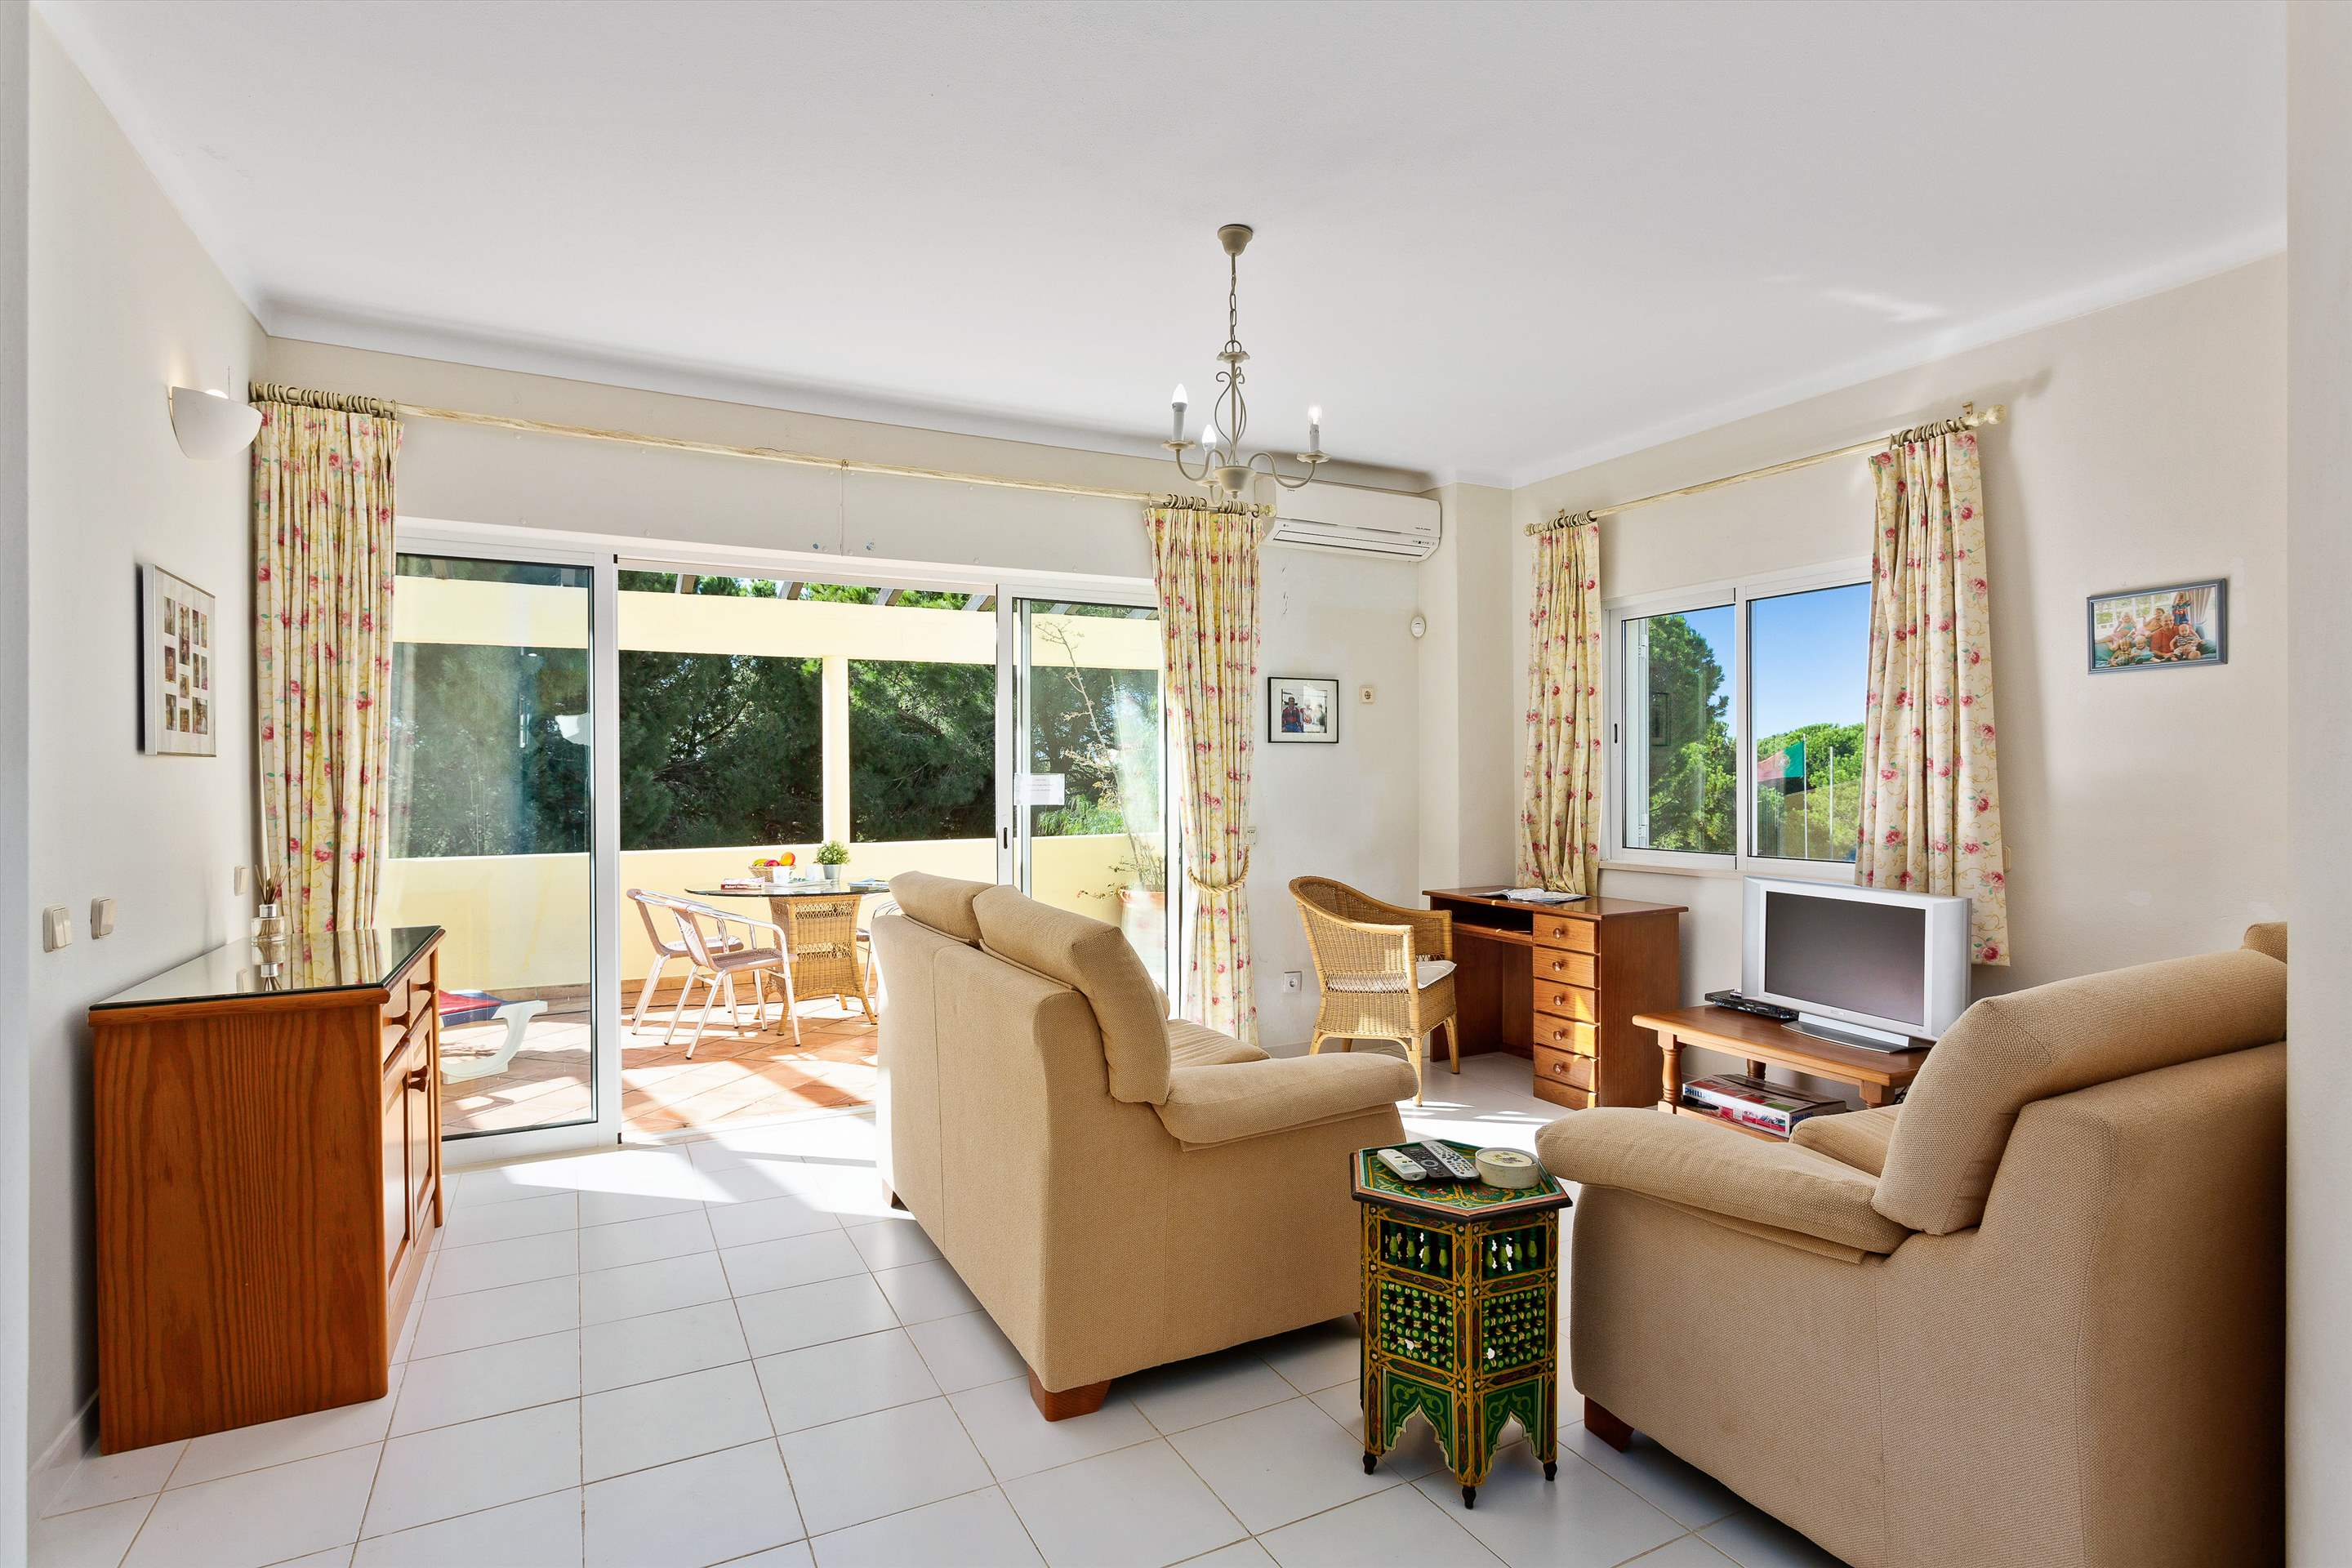 Villa Sarina, 4 bedroom villa in Vilamoura Area, Algarve Photo #10